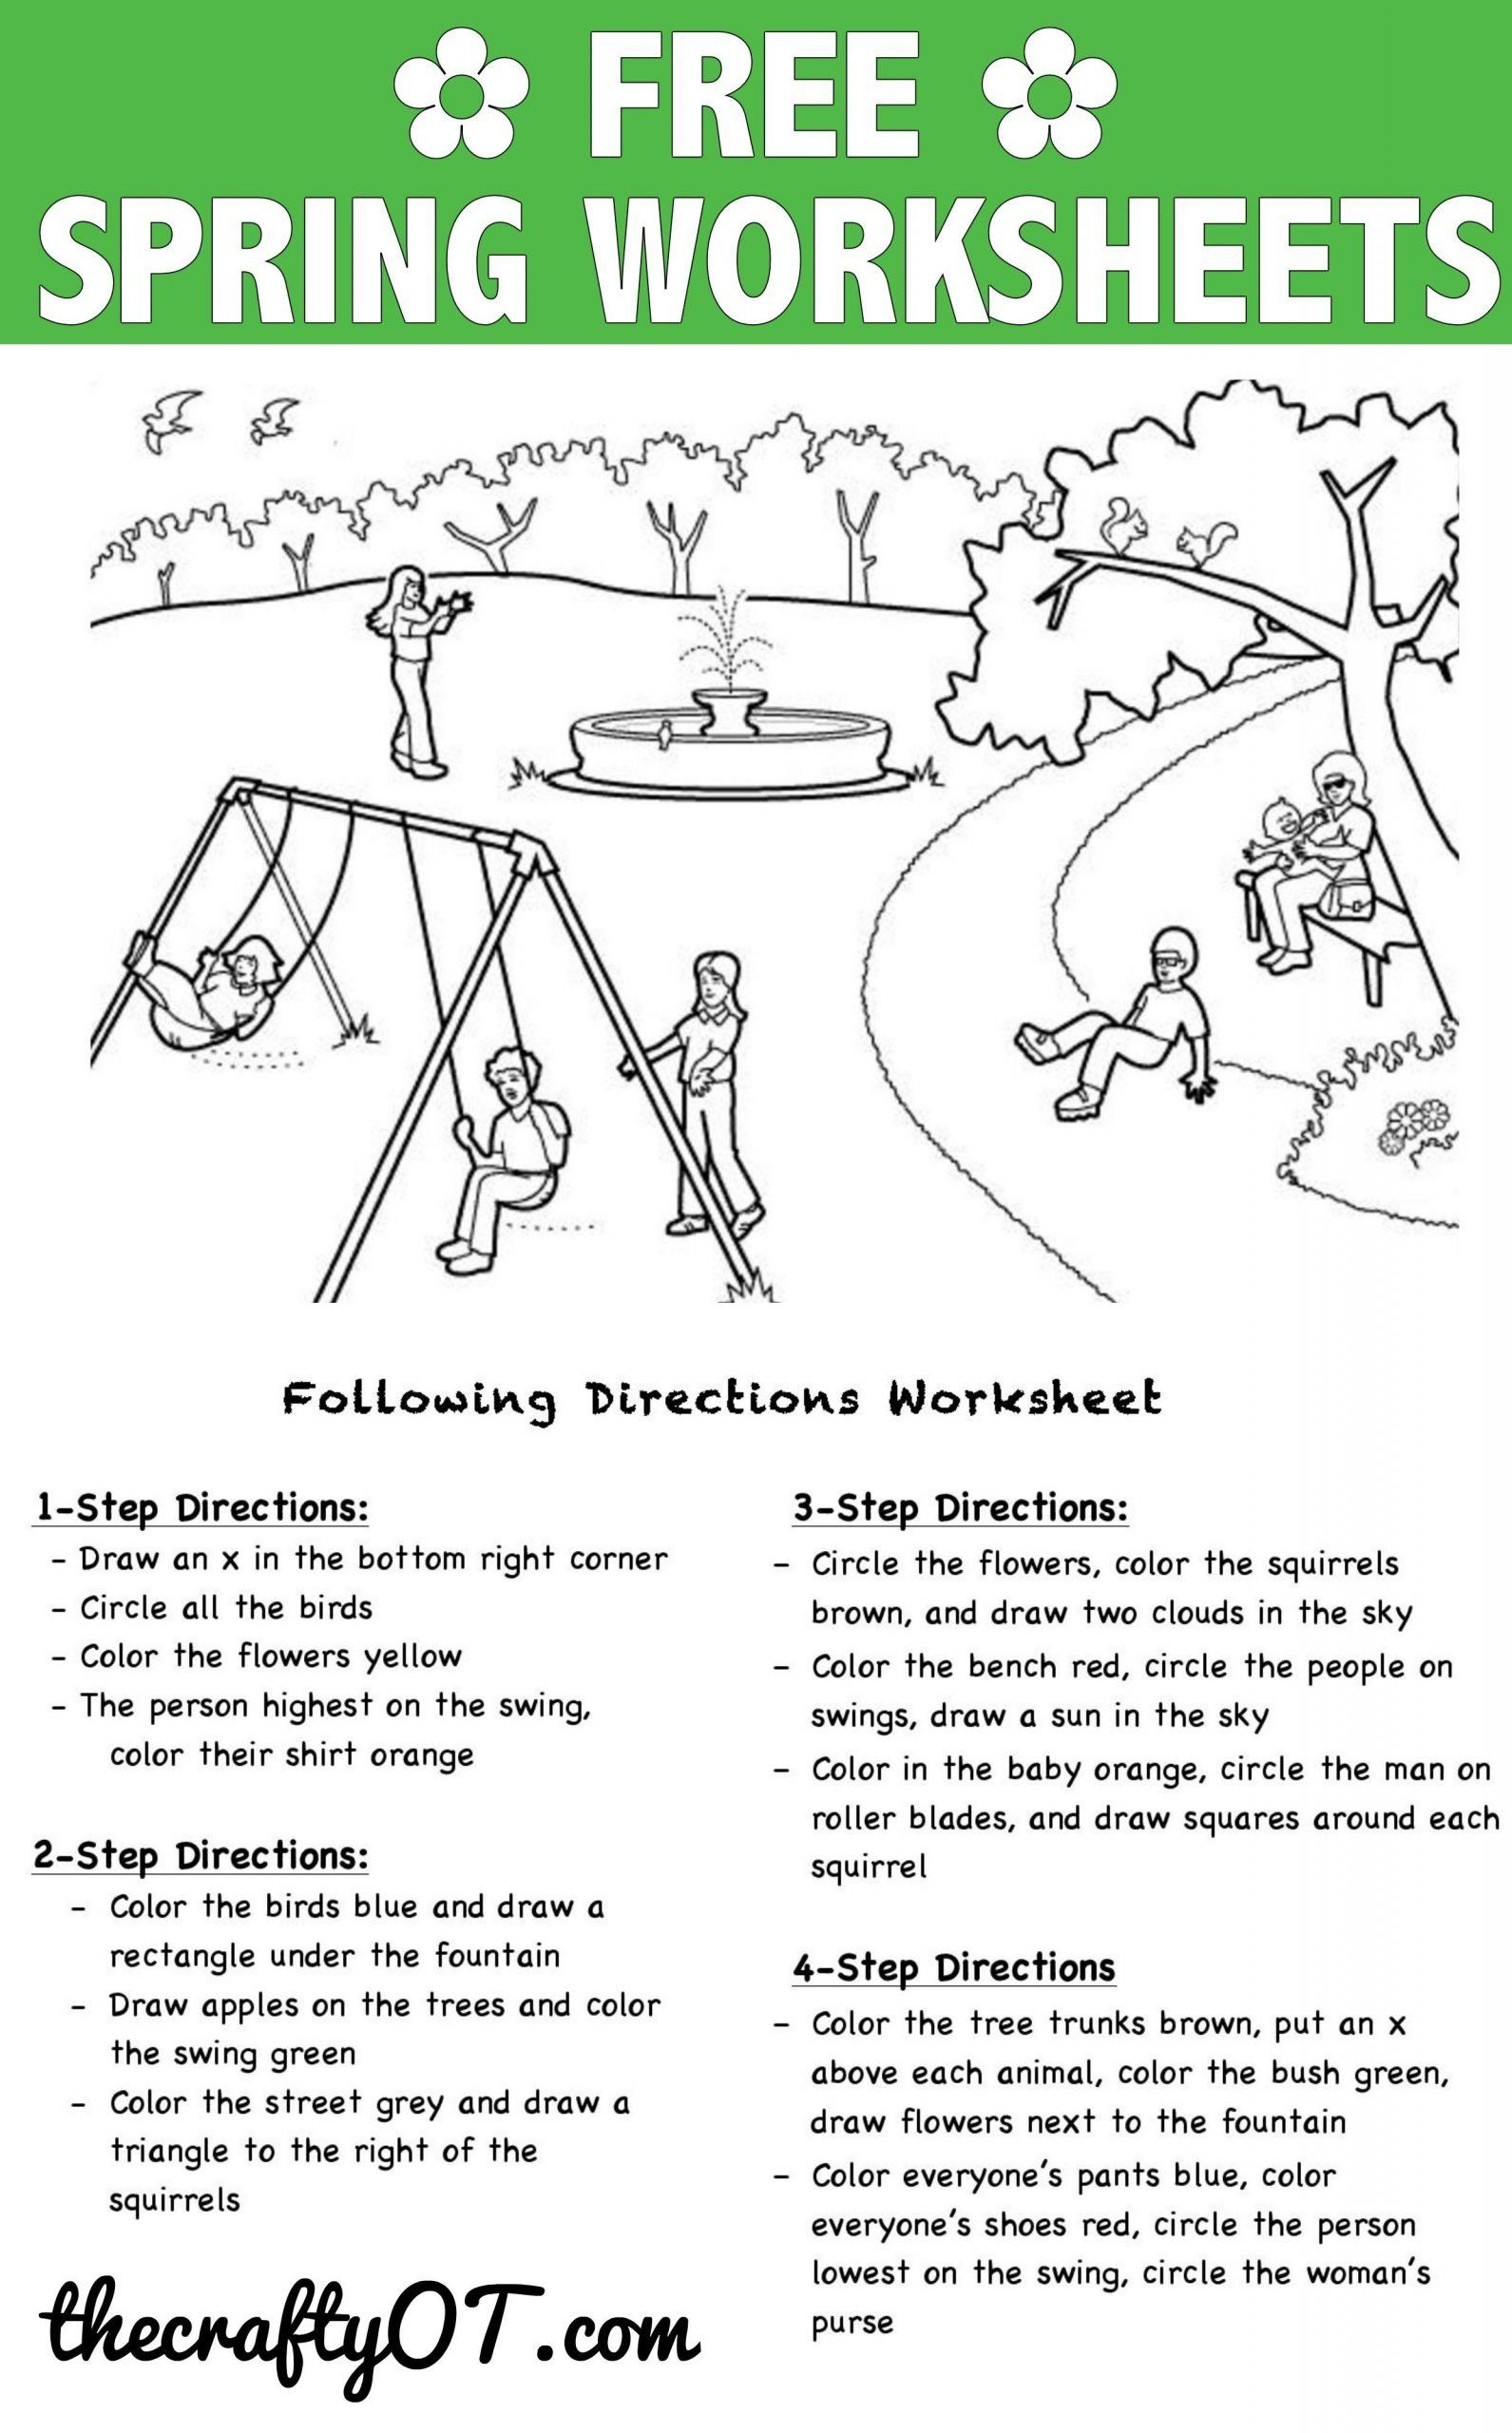 Following Directions Worksheet Third Grade Idea By Brooke